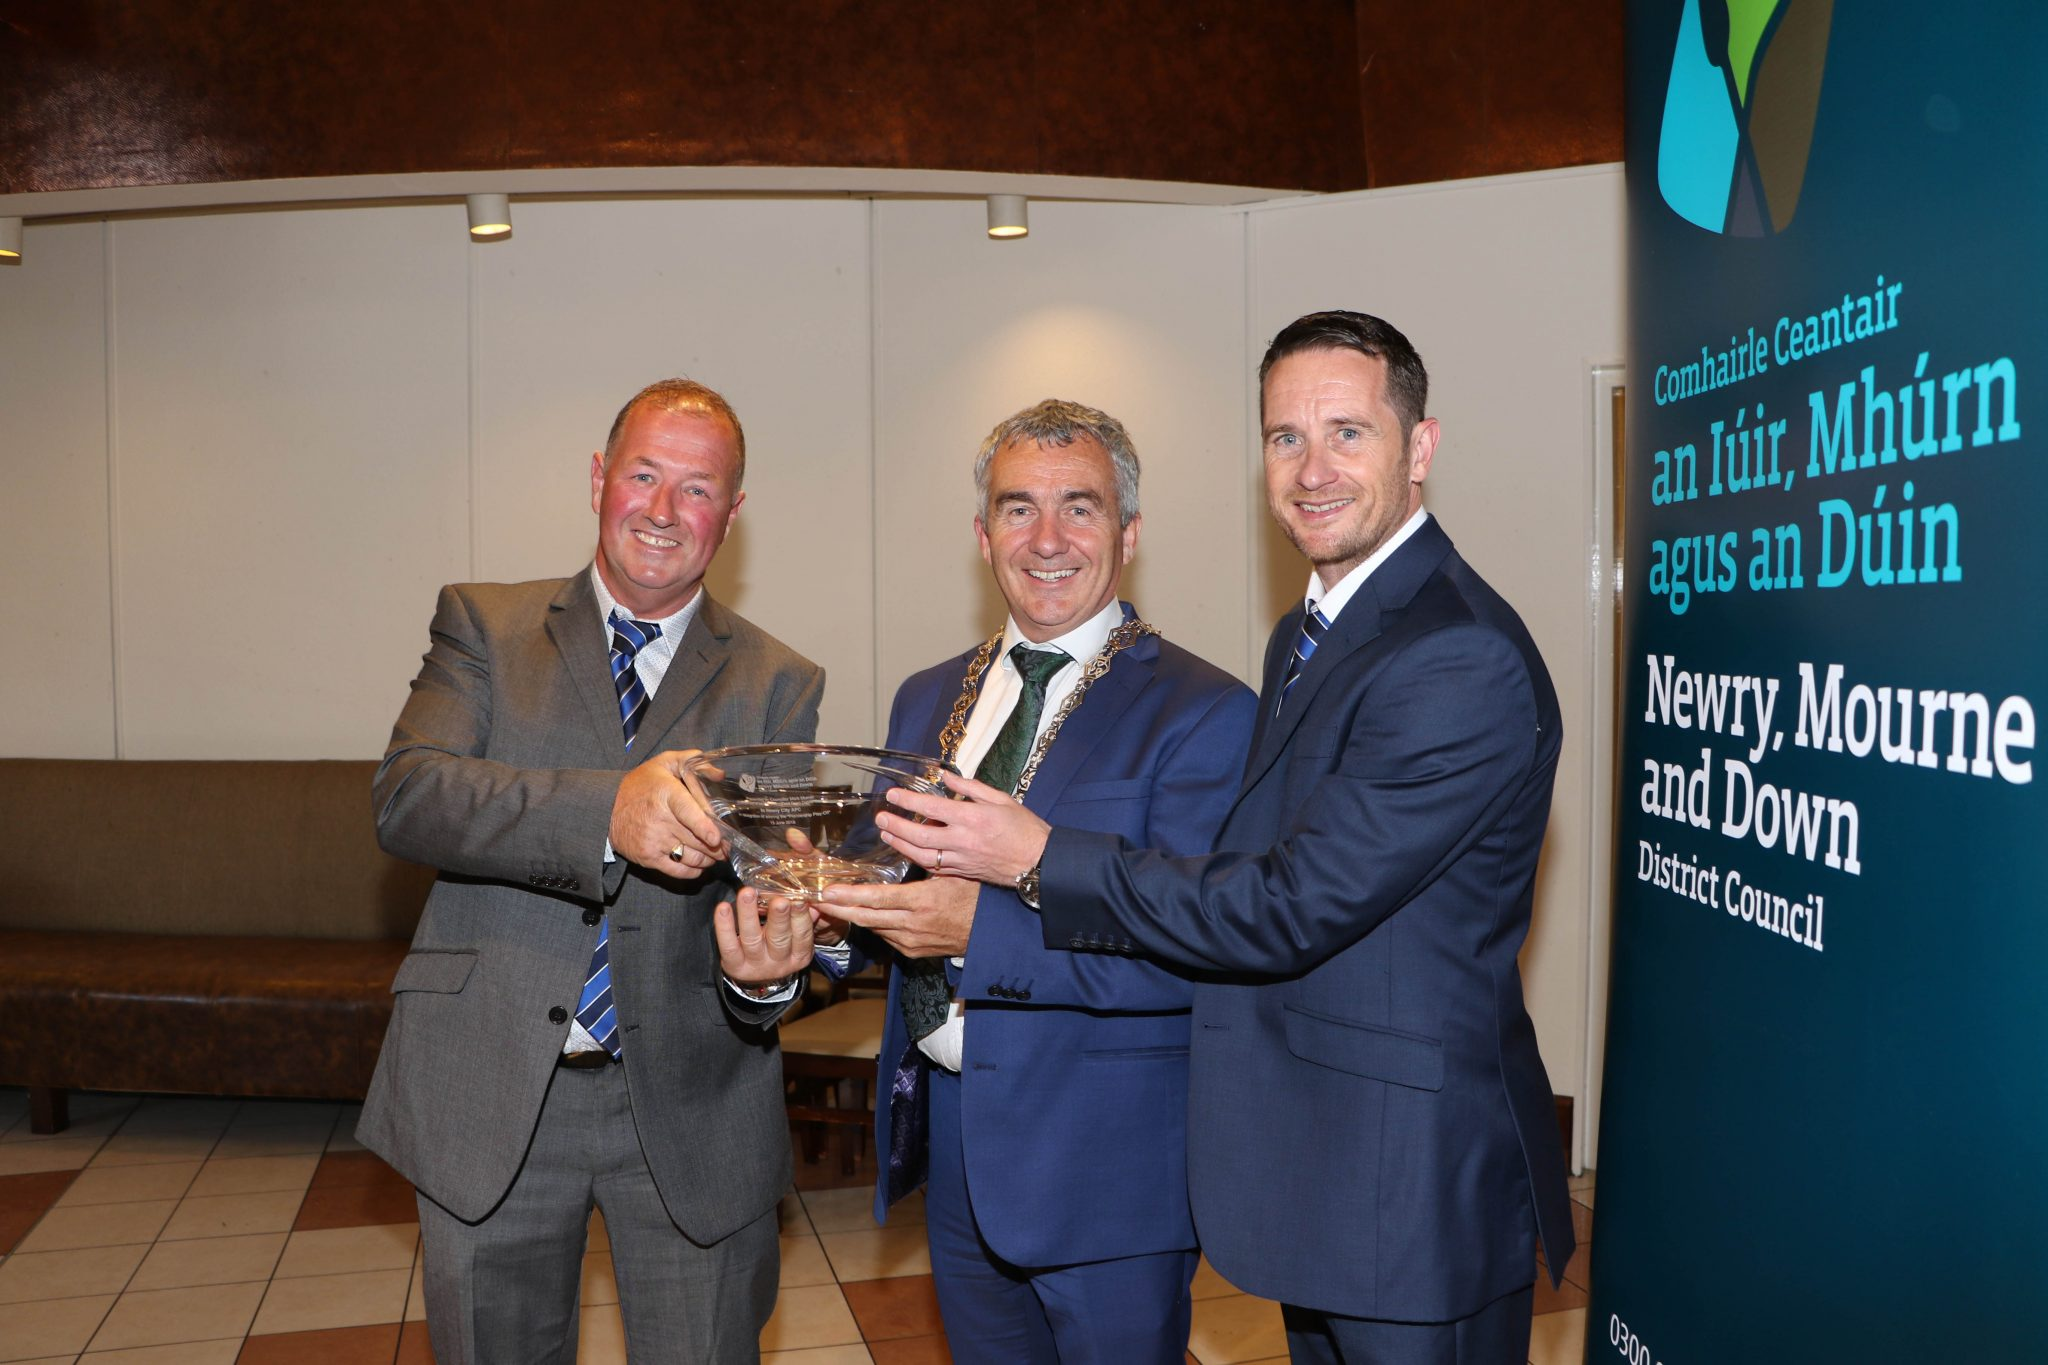 Chairperson Newry City AFC, Martin McLaughlin and Darren Mullen Manager accept an inscribed bowl from Chairperson Newry, Mourne and Down District Council, Councillor Mark Murnin.